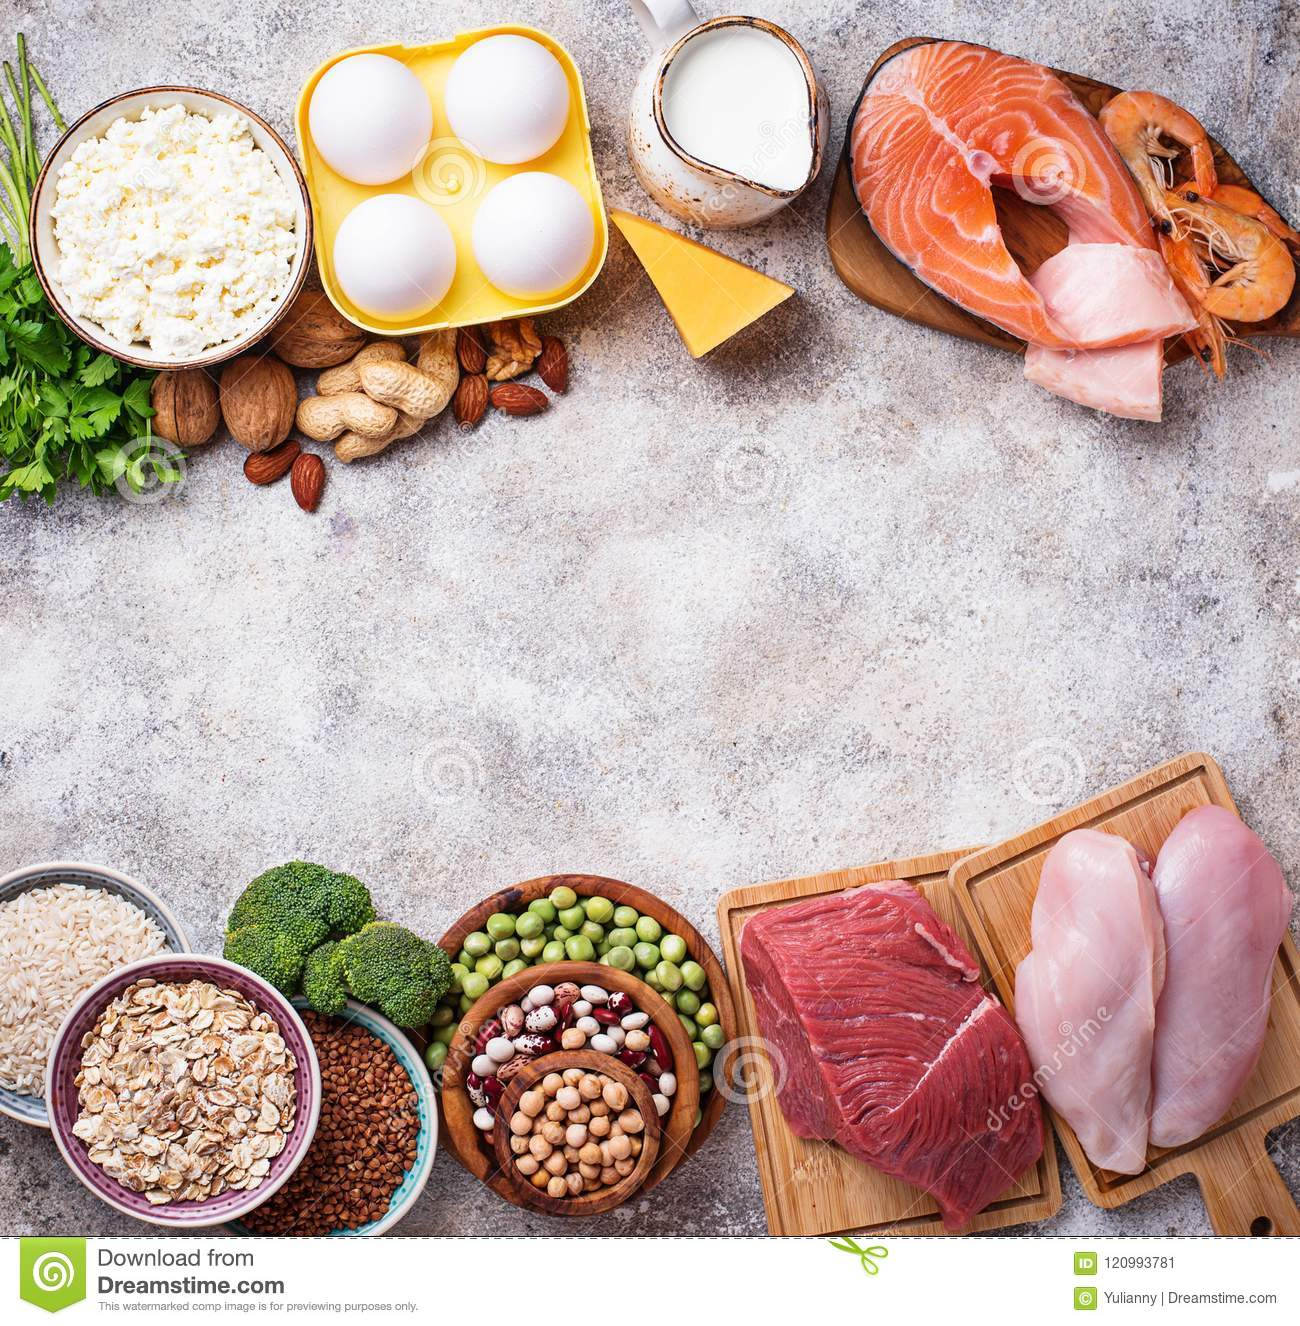 Healthy Food High In Protein